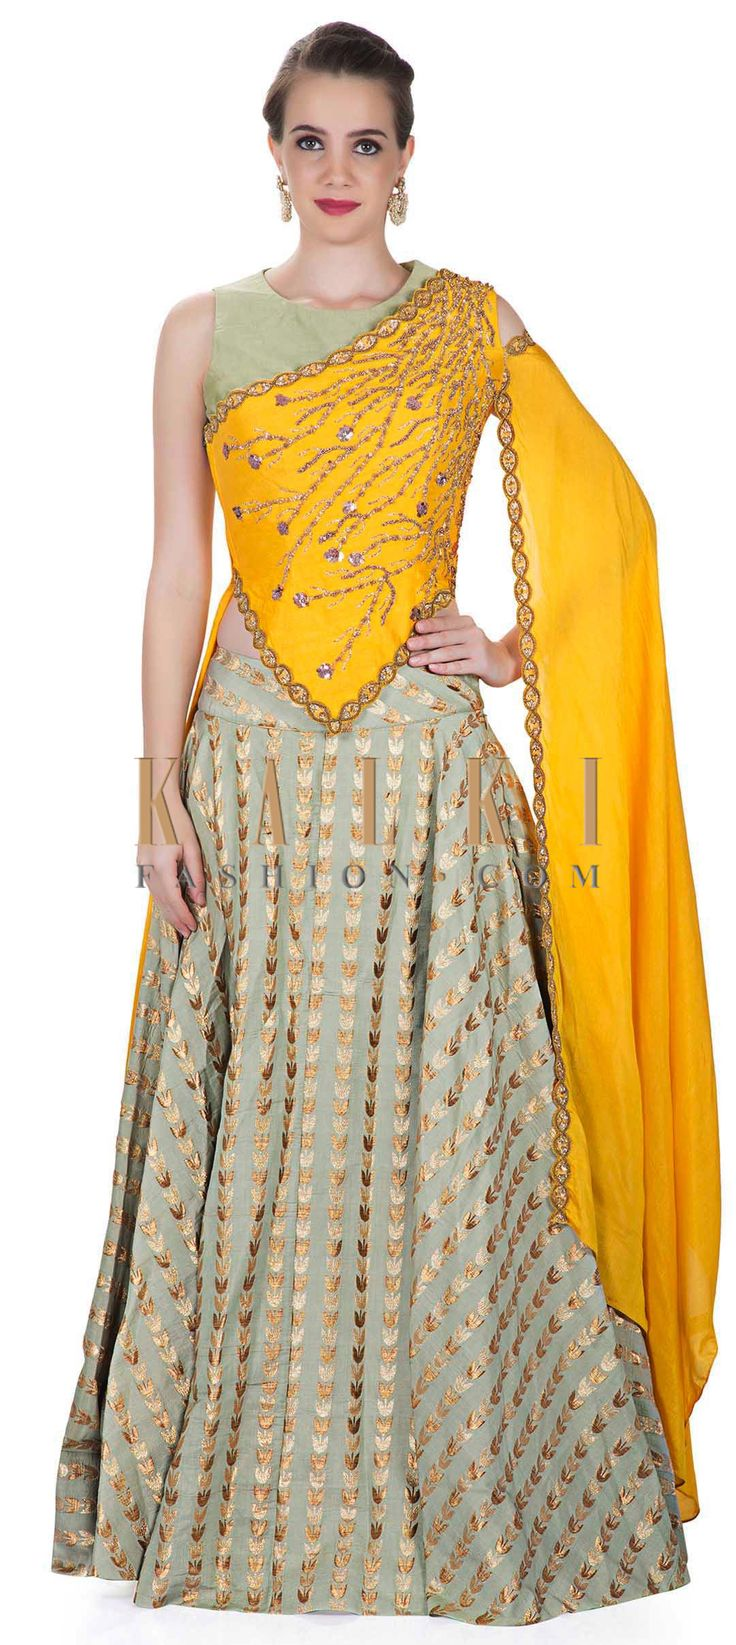 Olive Green Silk Lehenga with Yellow Fancy Top Featuring Cut Dan and Sequins only on Kalki